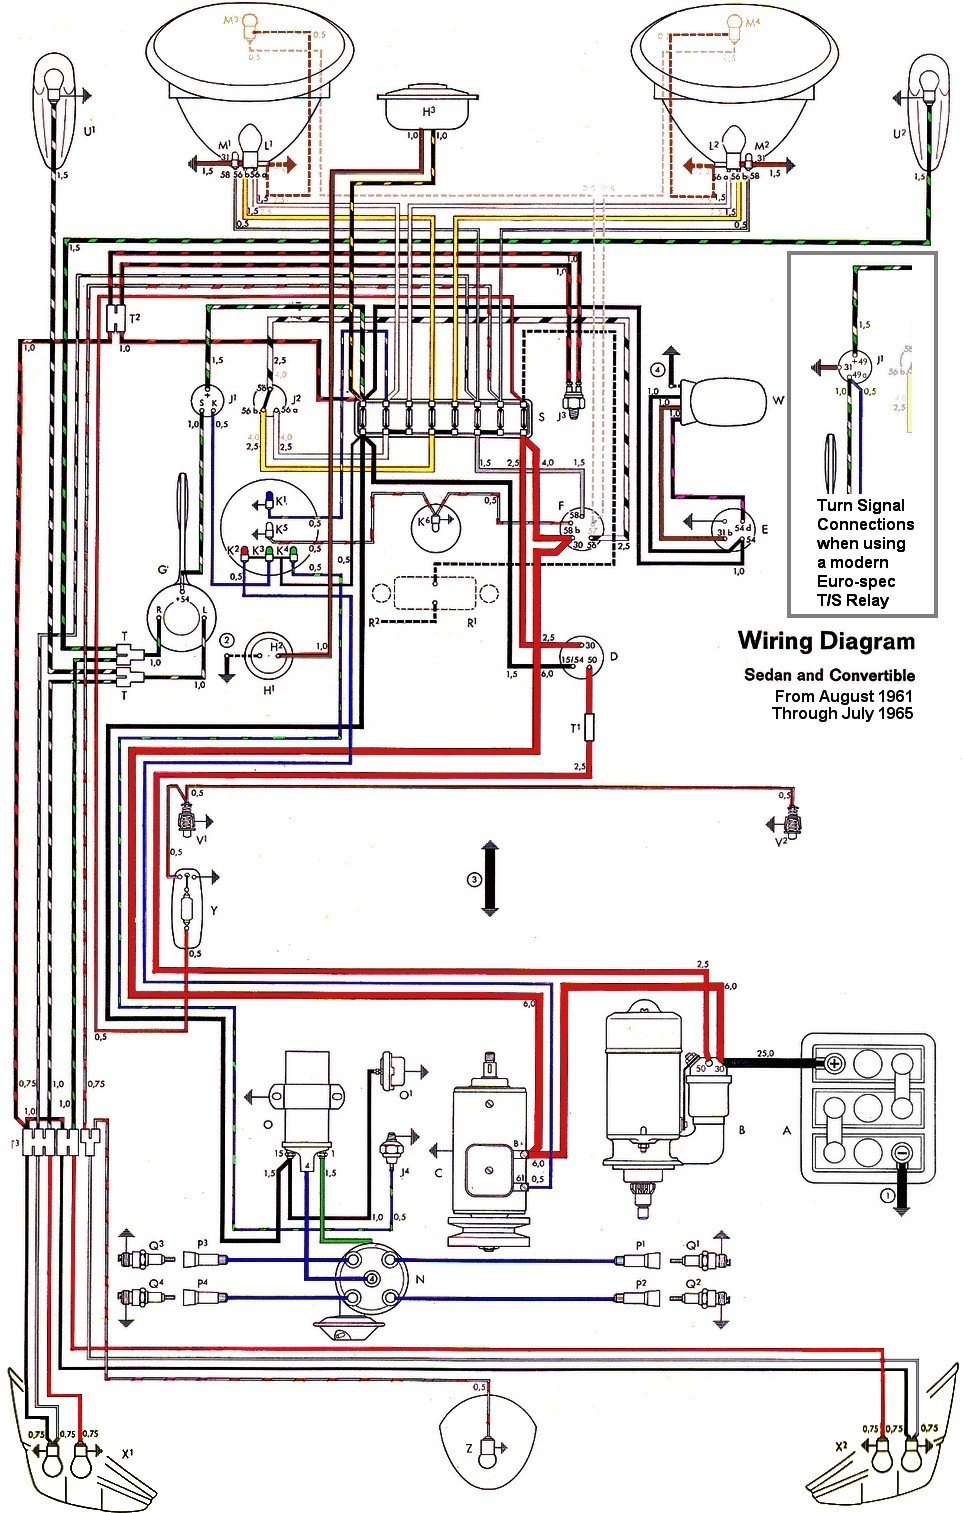 bug_62 65withinset wiring diagram vw beetle sedan and convertible 1961 1965 vw 1965 vw beetle wiring diagram at mifinder.co